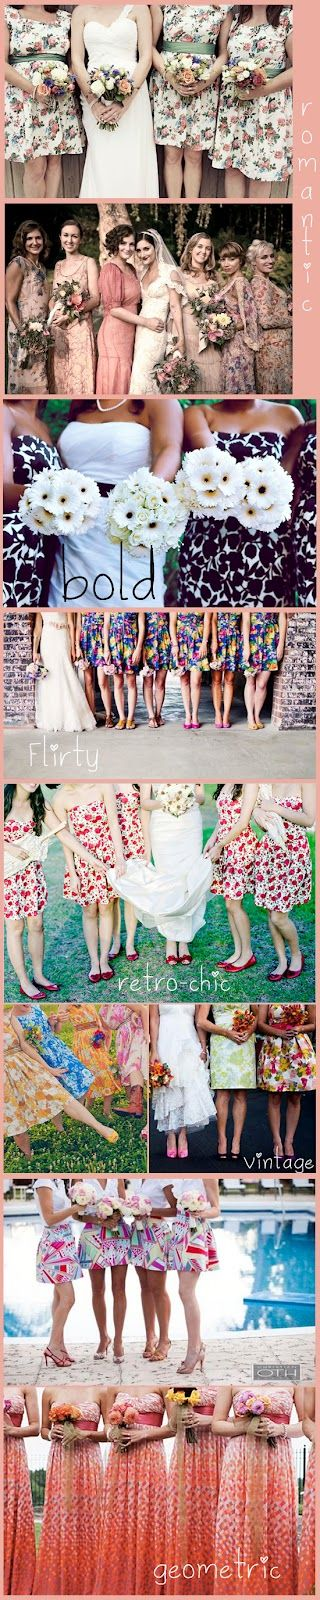 My Wedding Reception Ideas Blog: Pretty Patterned Bridesmaid Dresses